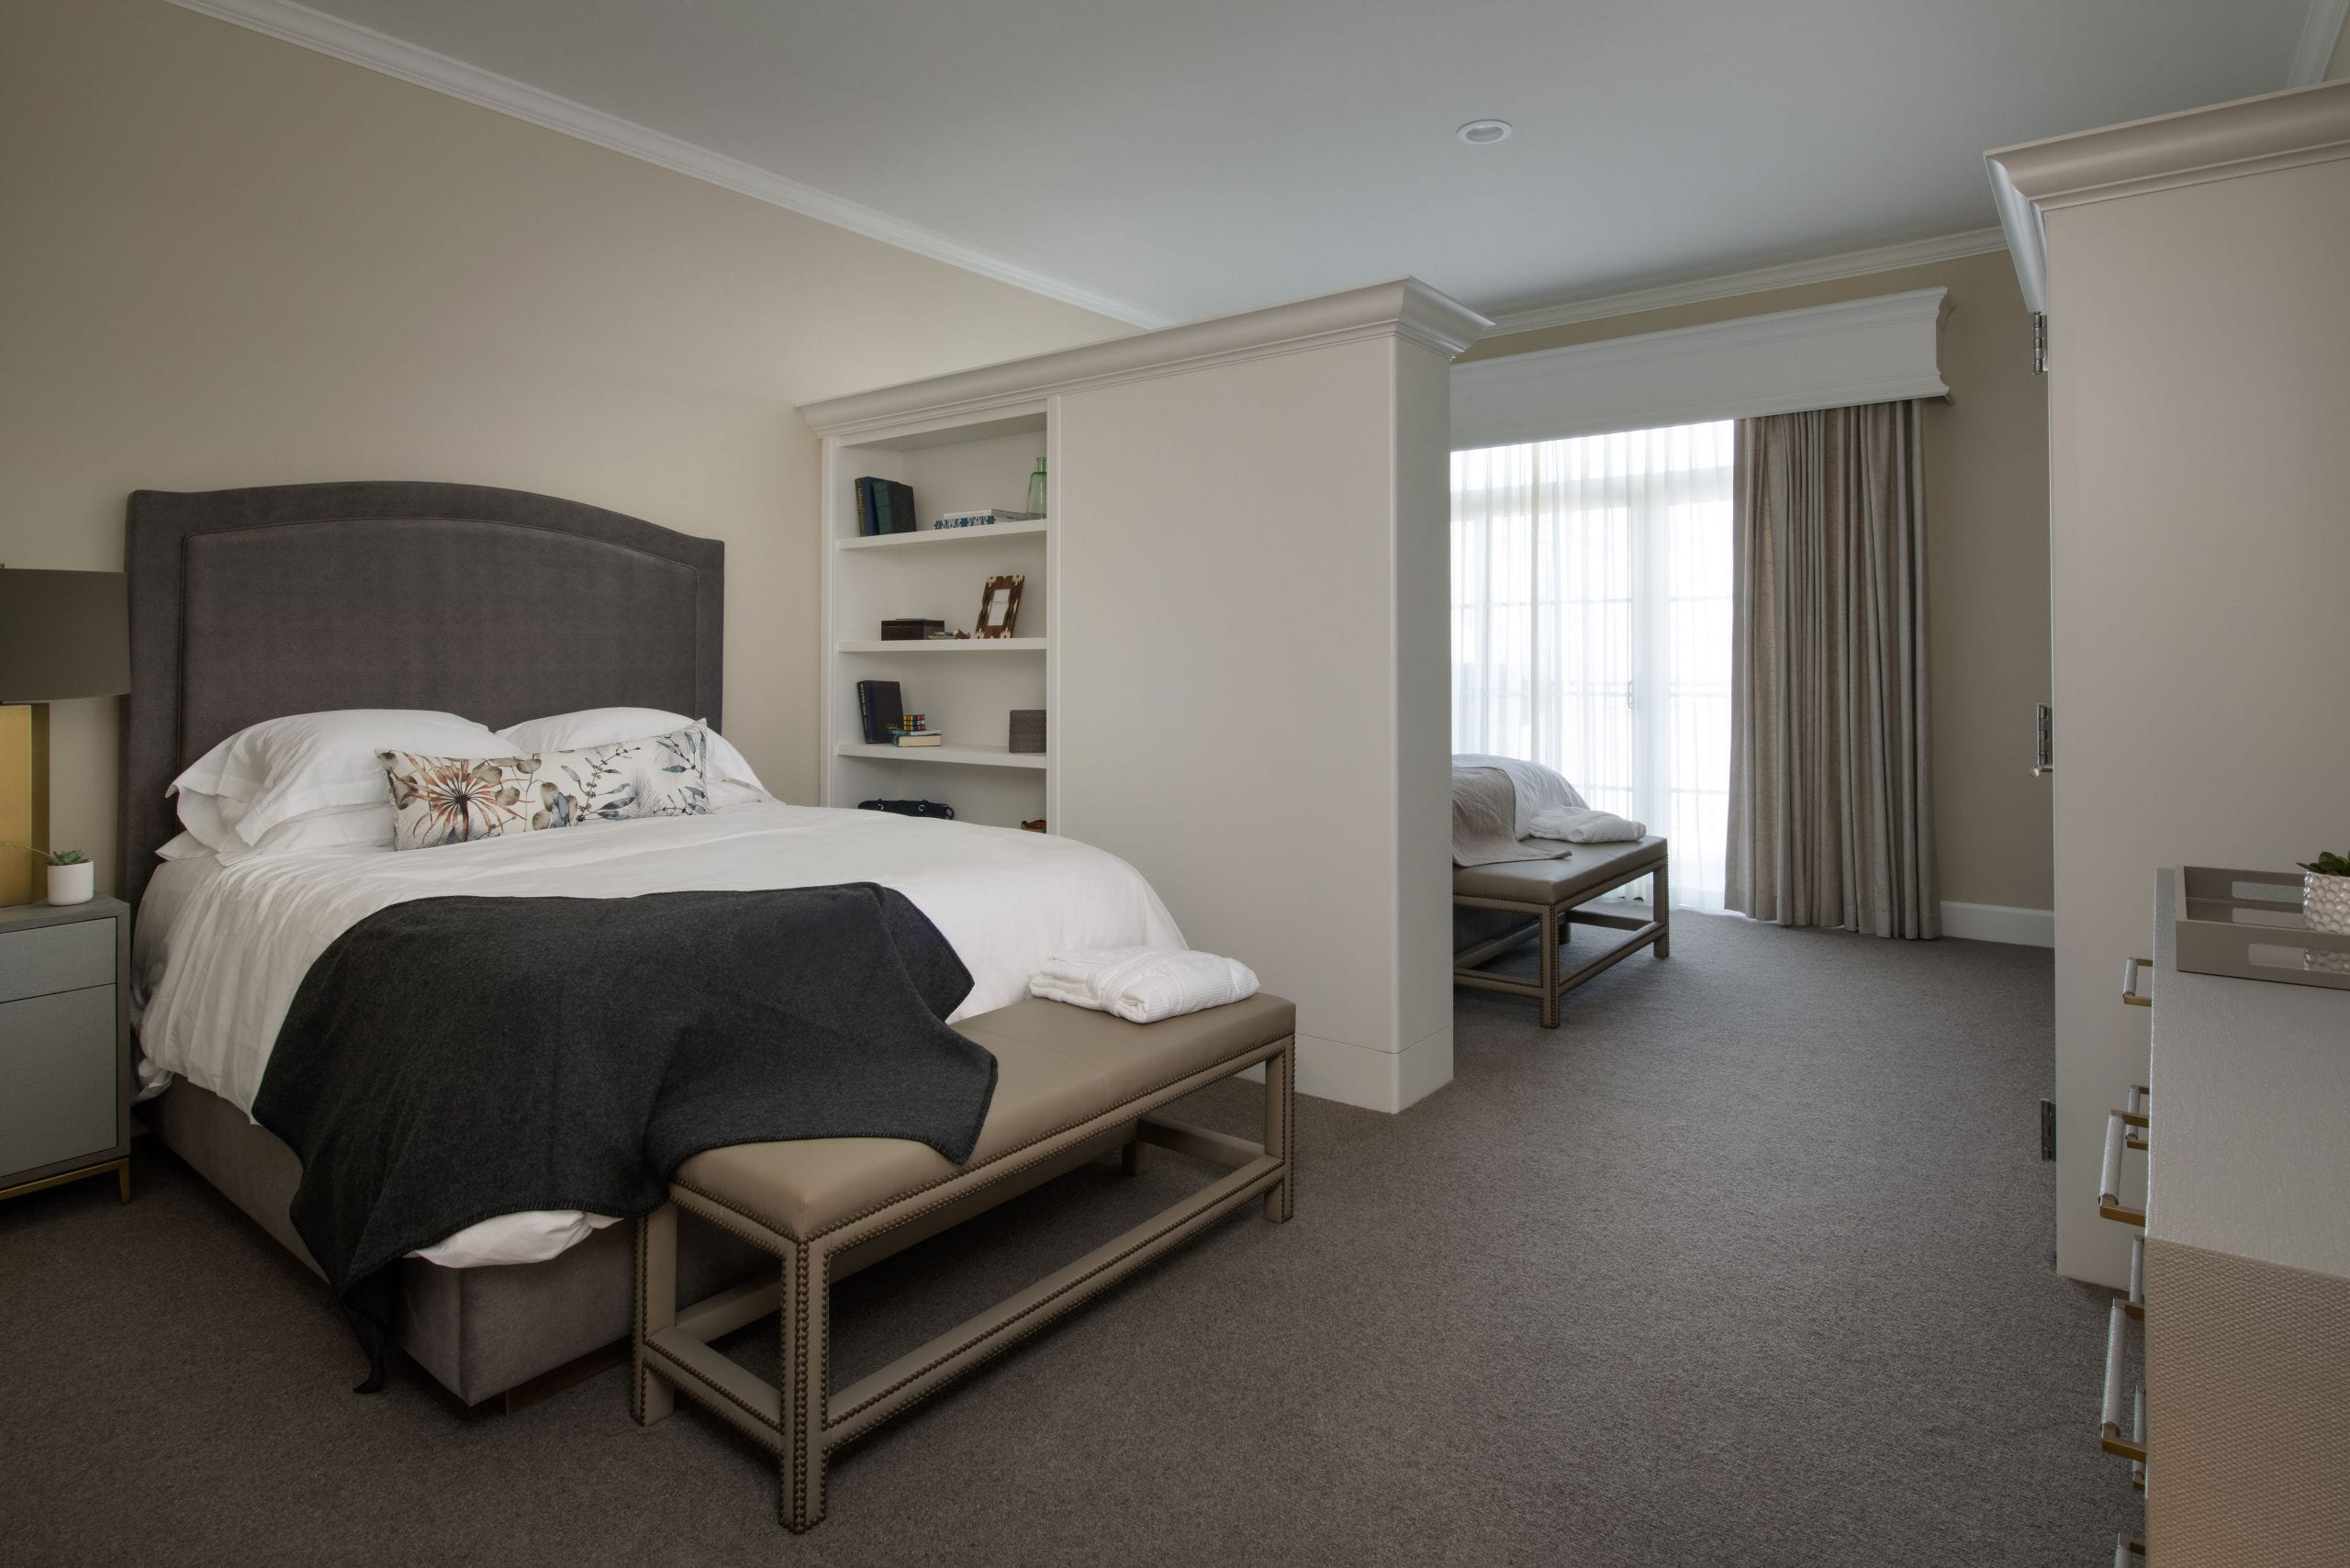 semiprivate suite with two beds